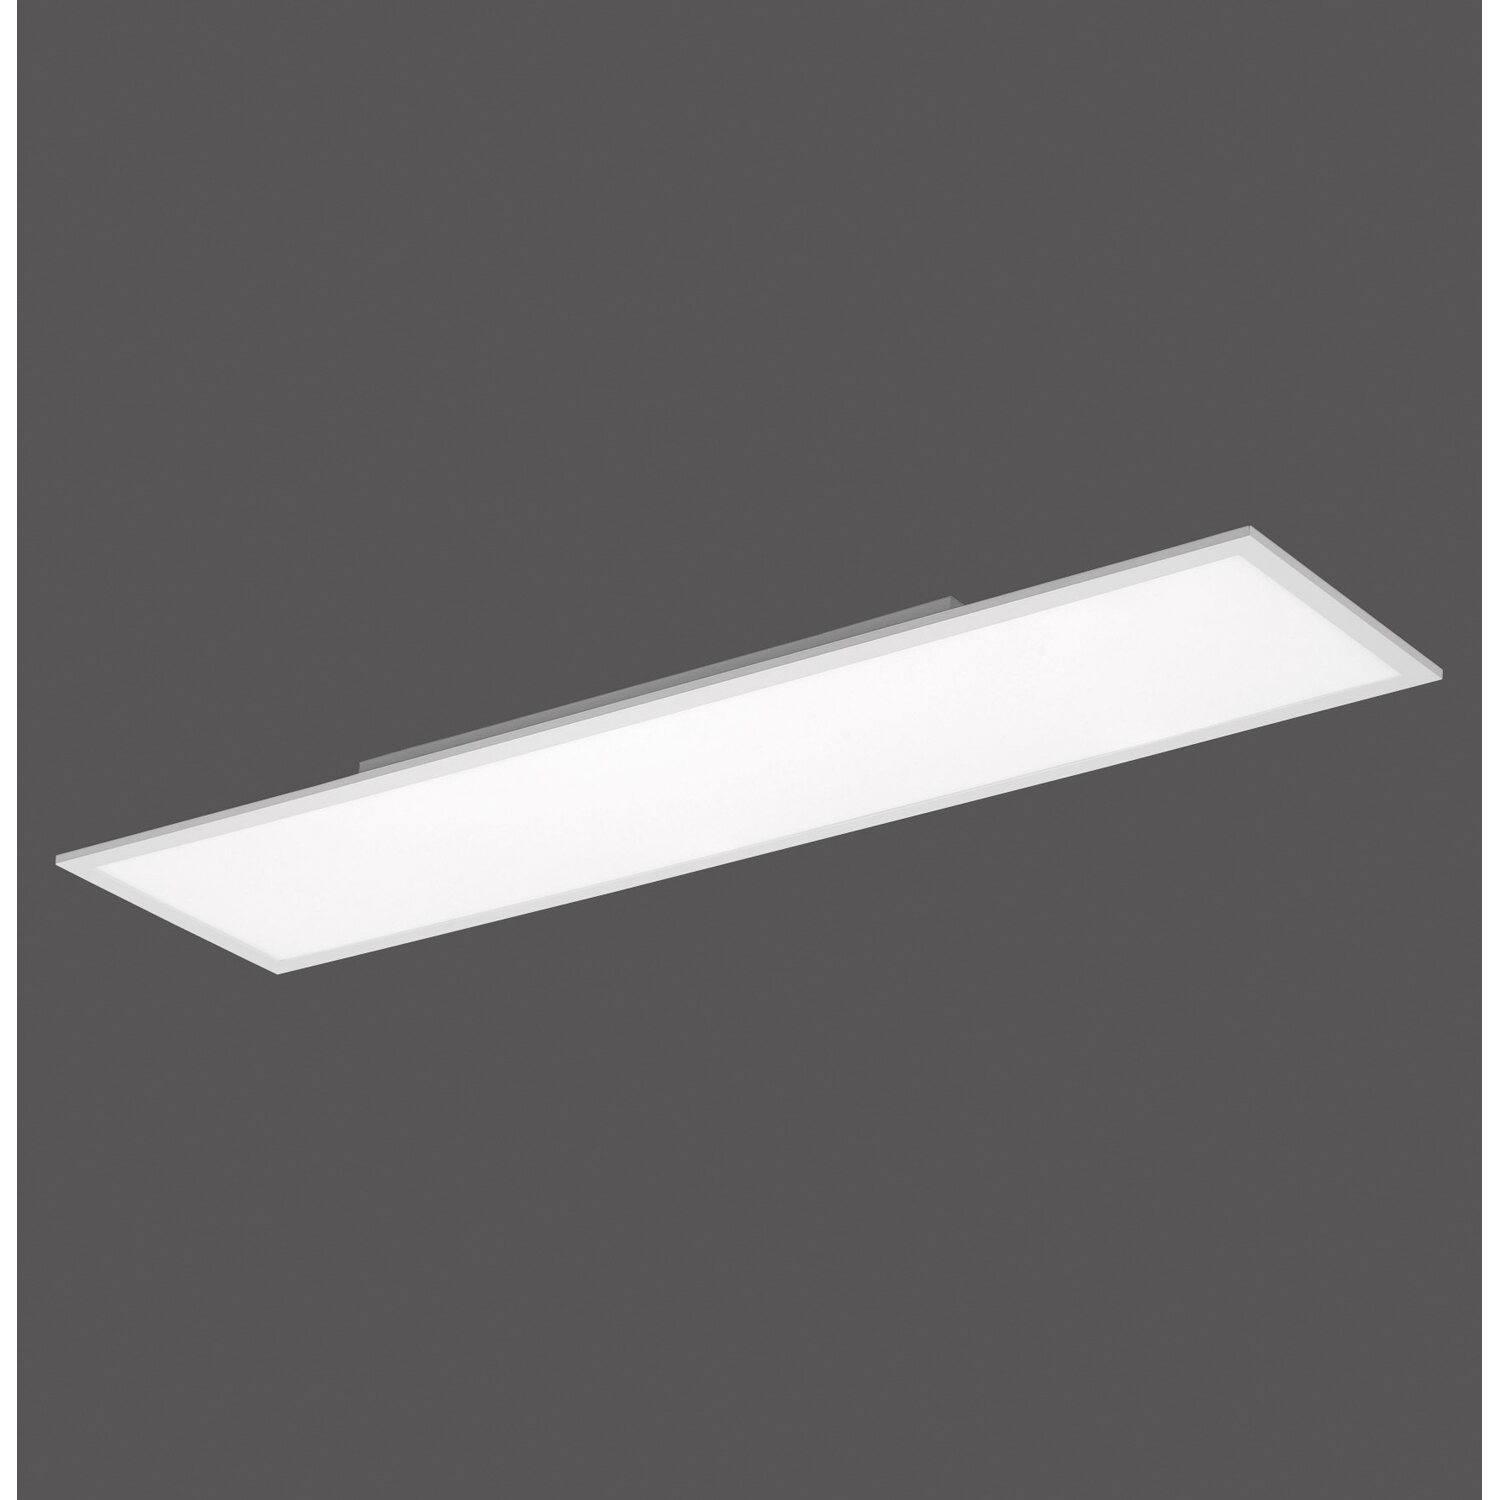 Led panel 120x30cm dimmbar 4000k ultraflaches design for Lampen led deckenleuchten